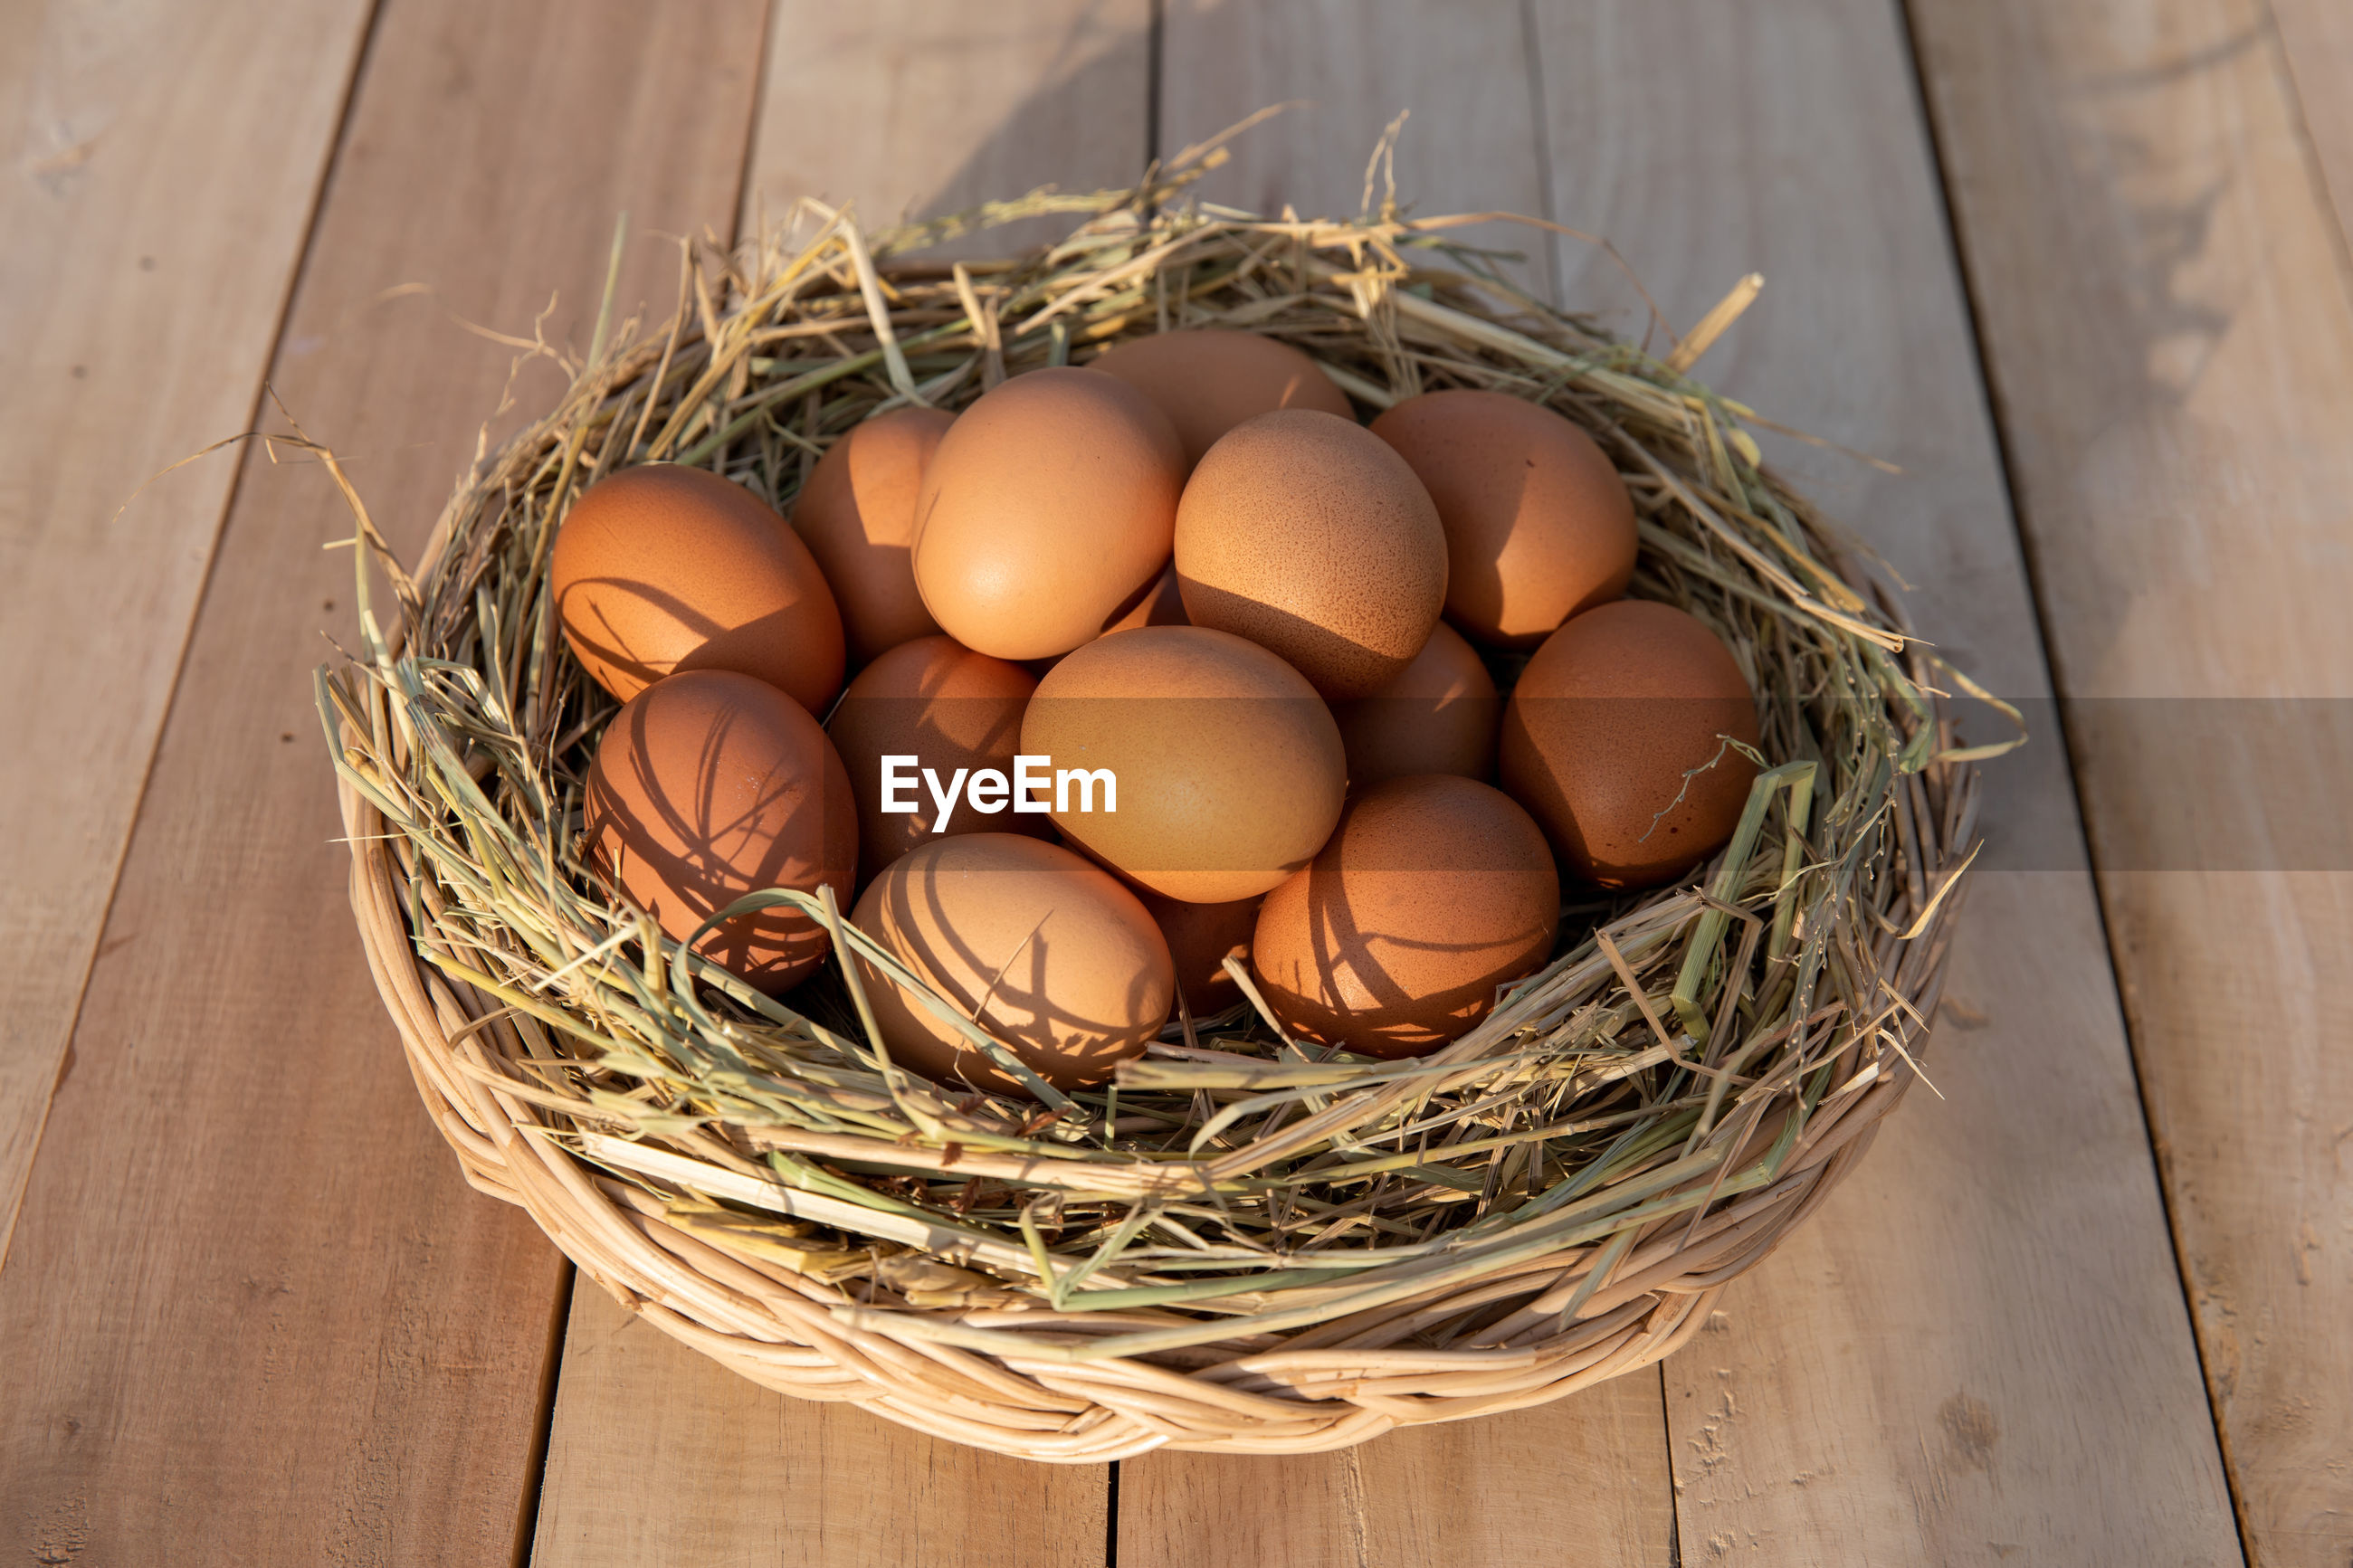 HIGH ANGLE VIEW OF EGGS IN WICKER BASKET